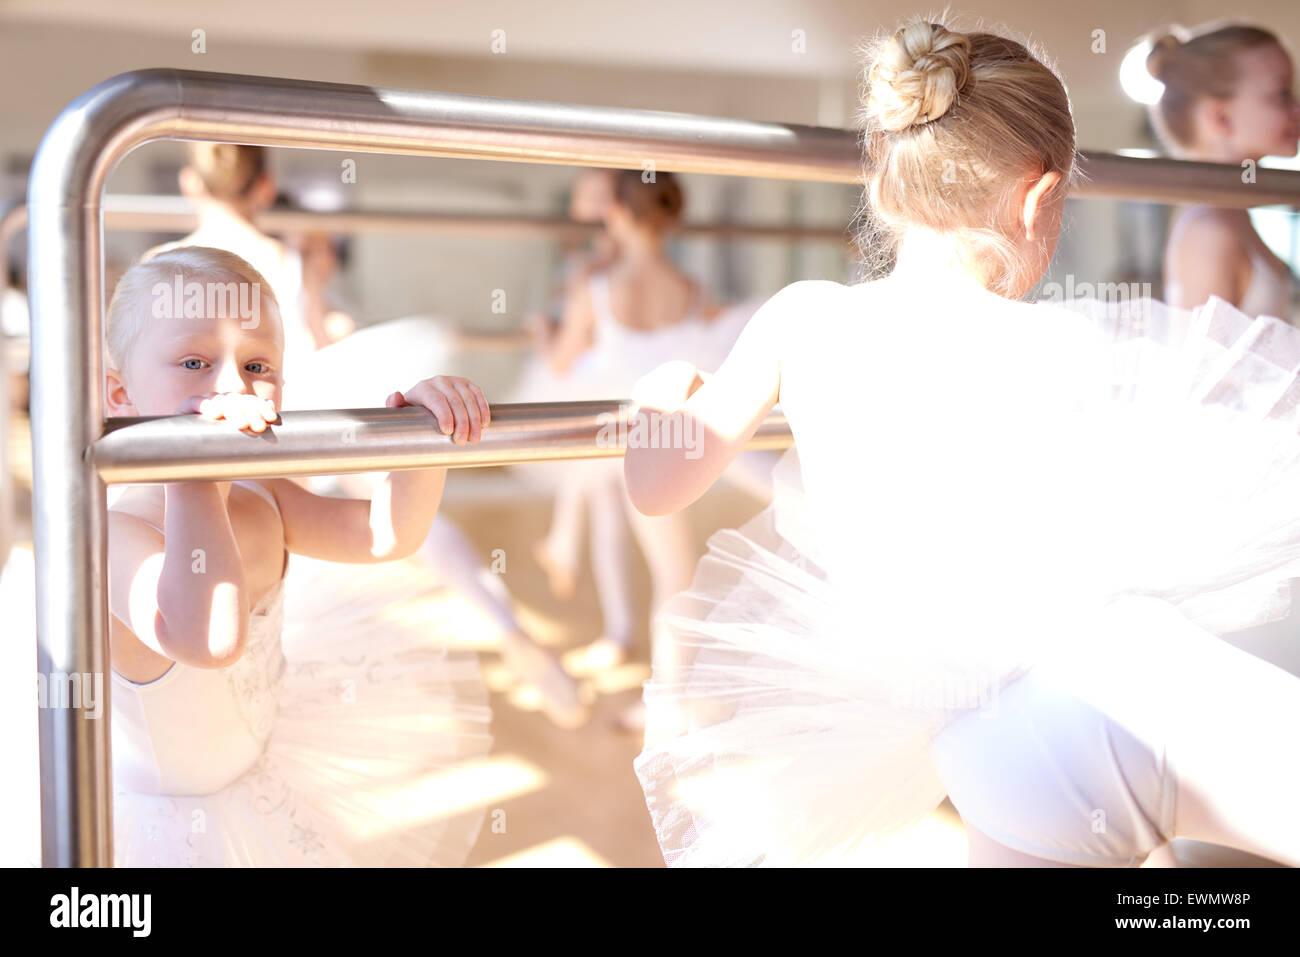 Little White Ballerinas Doing a Stretching Exercise Using a Ballet Horizontal Bar at the Dance Studio. - Stock Image